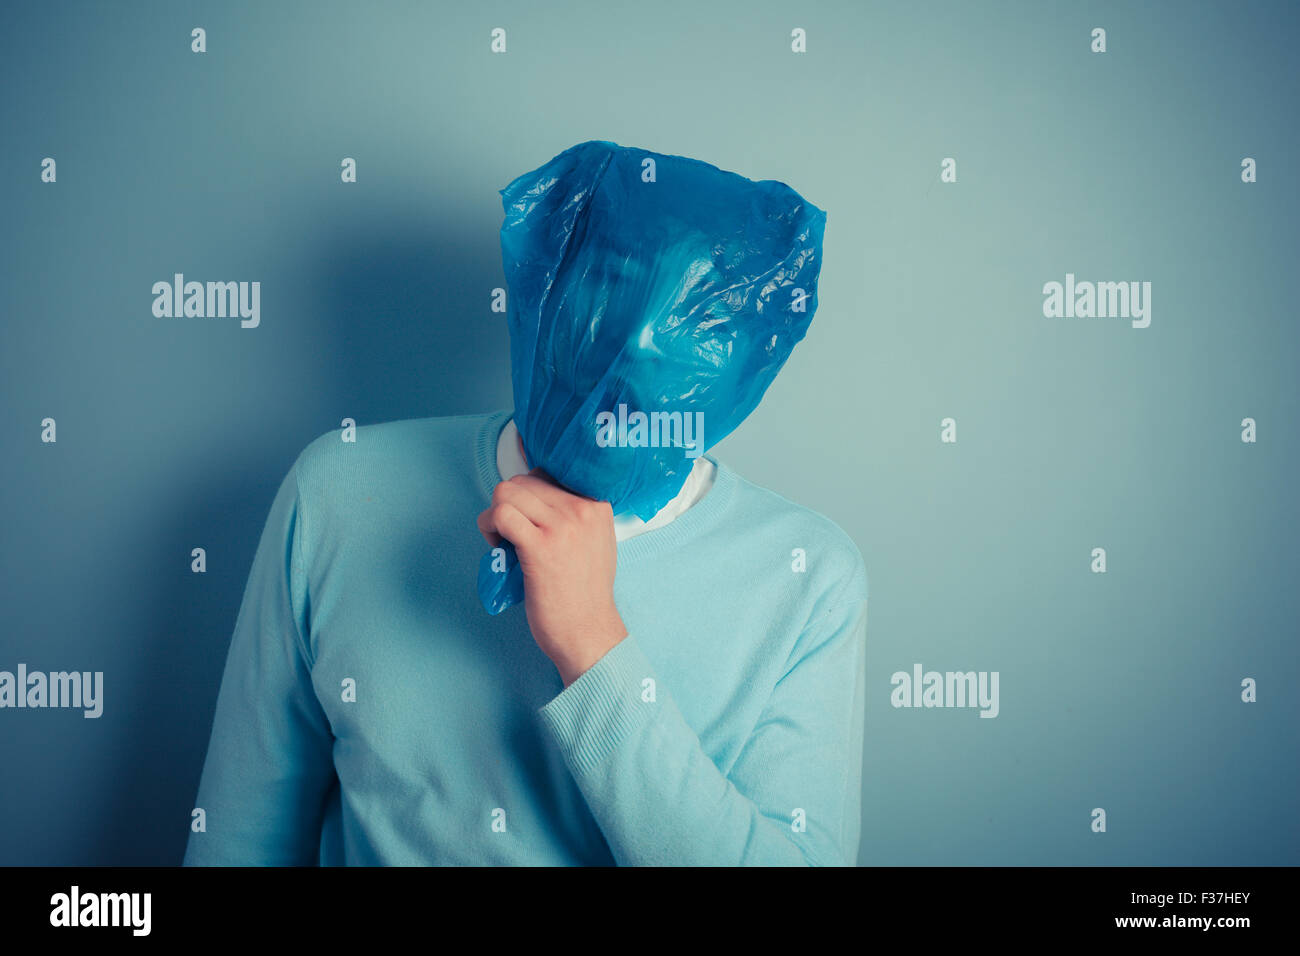 A man with a plastic bag over his head is suffocating - Stock Image